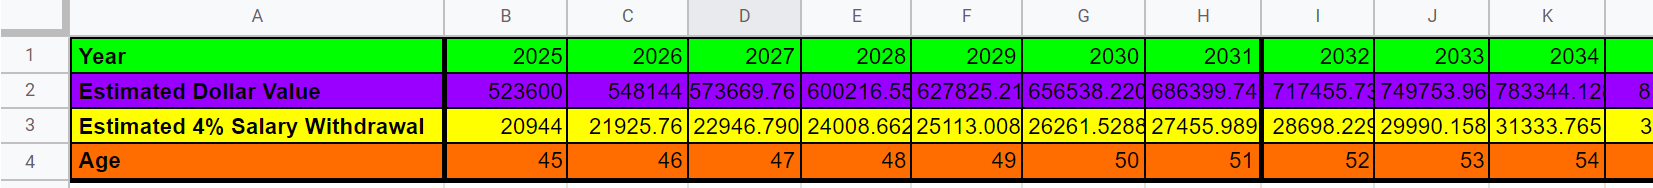 Google Sheets row 3, columns A-K, highlighted in yellow. Cell A3 reads Estimated 4% Salary Withdrawal. Cells B3 through K3 shows the calculated value for 4% of the values in the corresponding column in row 2.